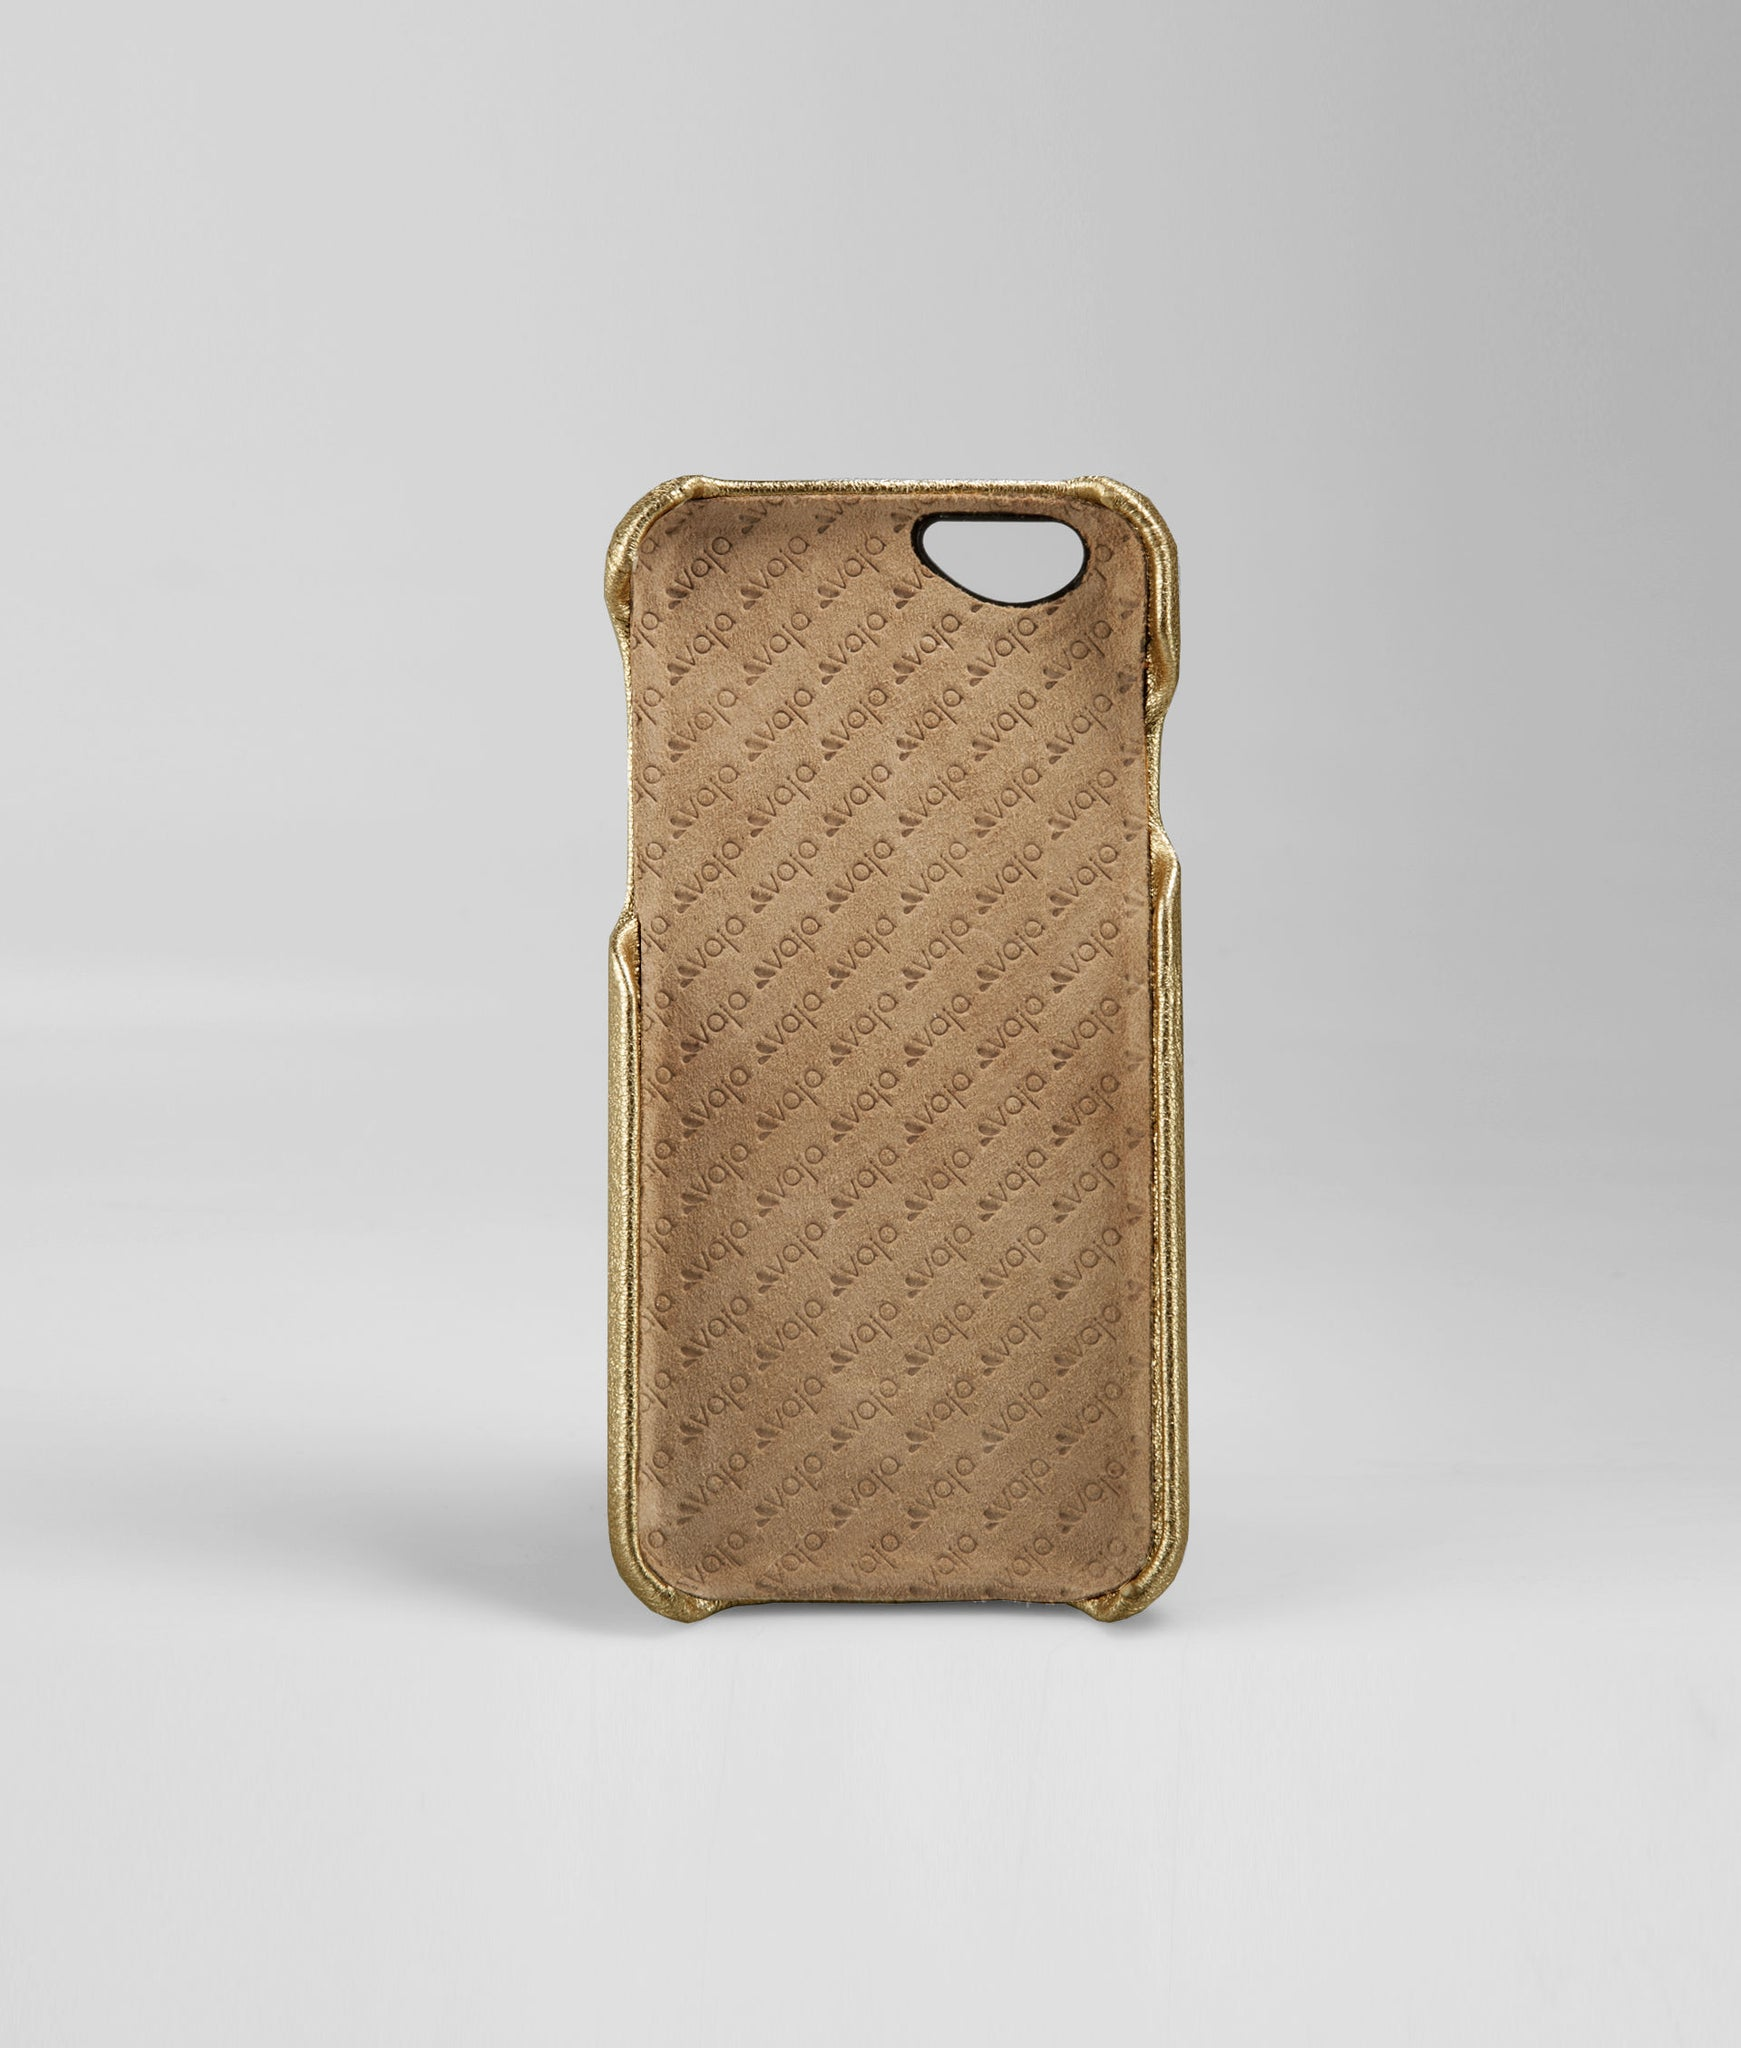 iPhone 6/6s Plus Leather Case - Vintage Metallic Grip